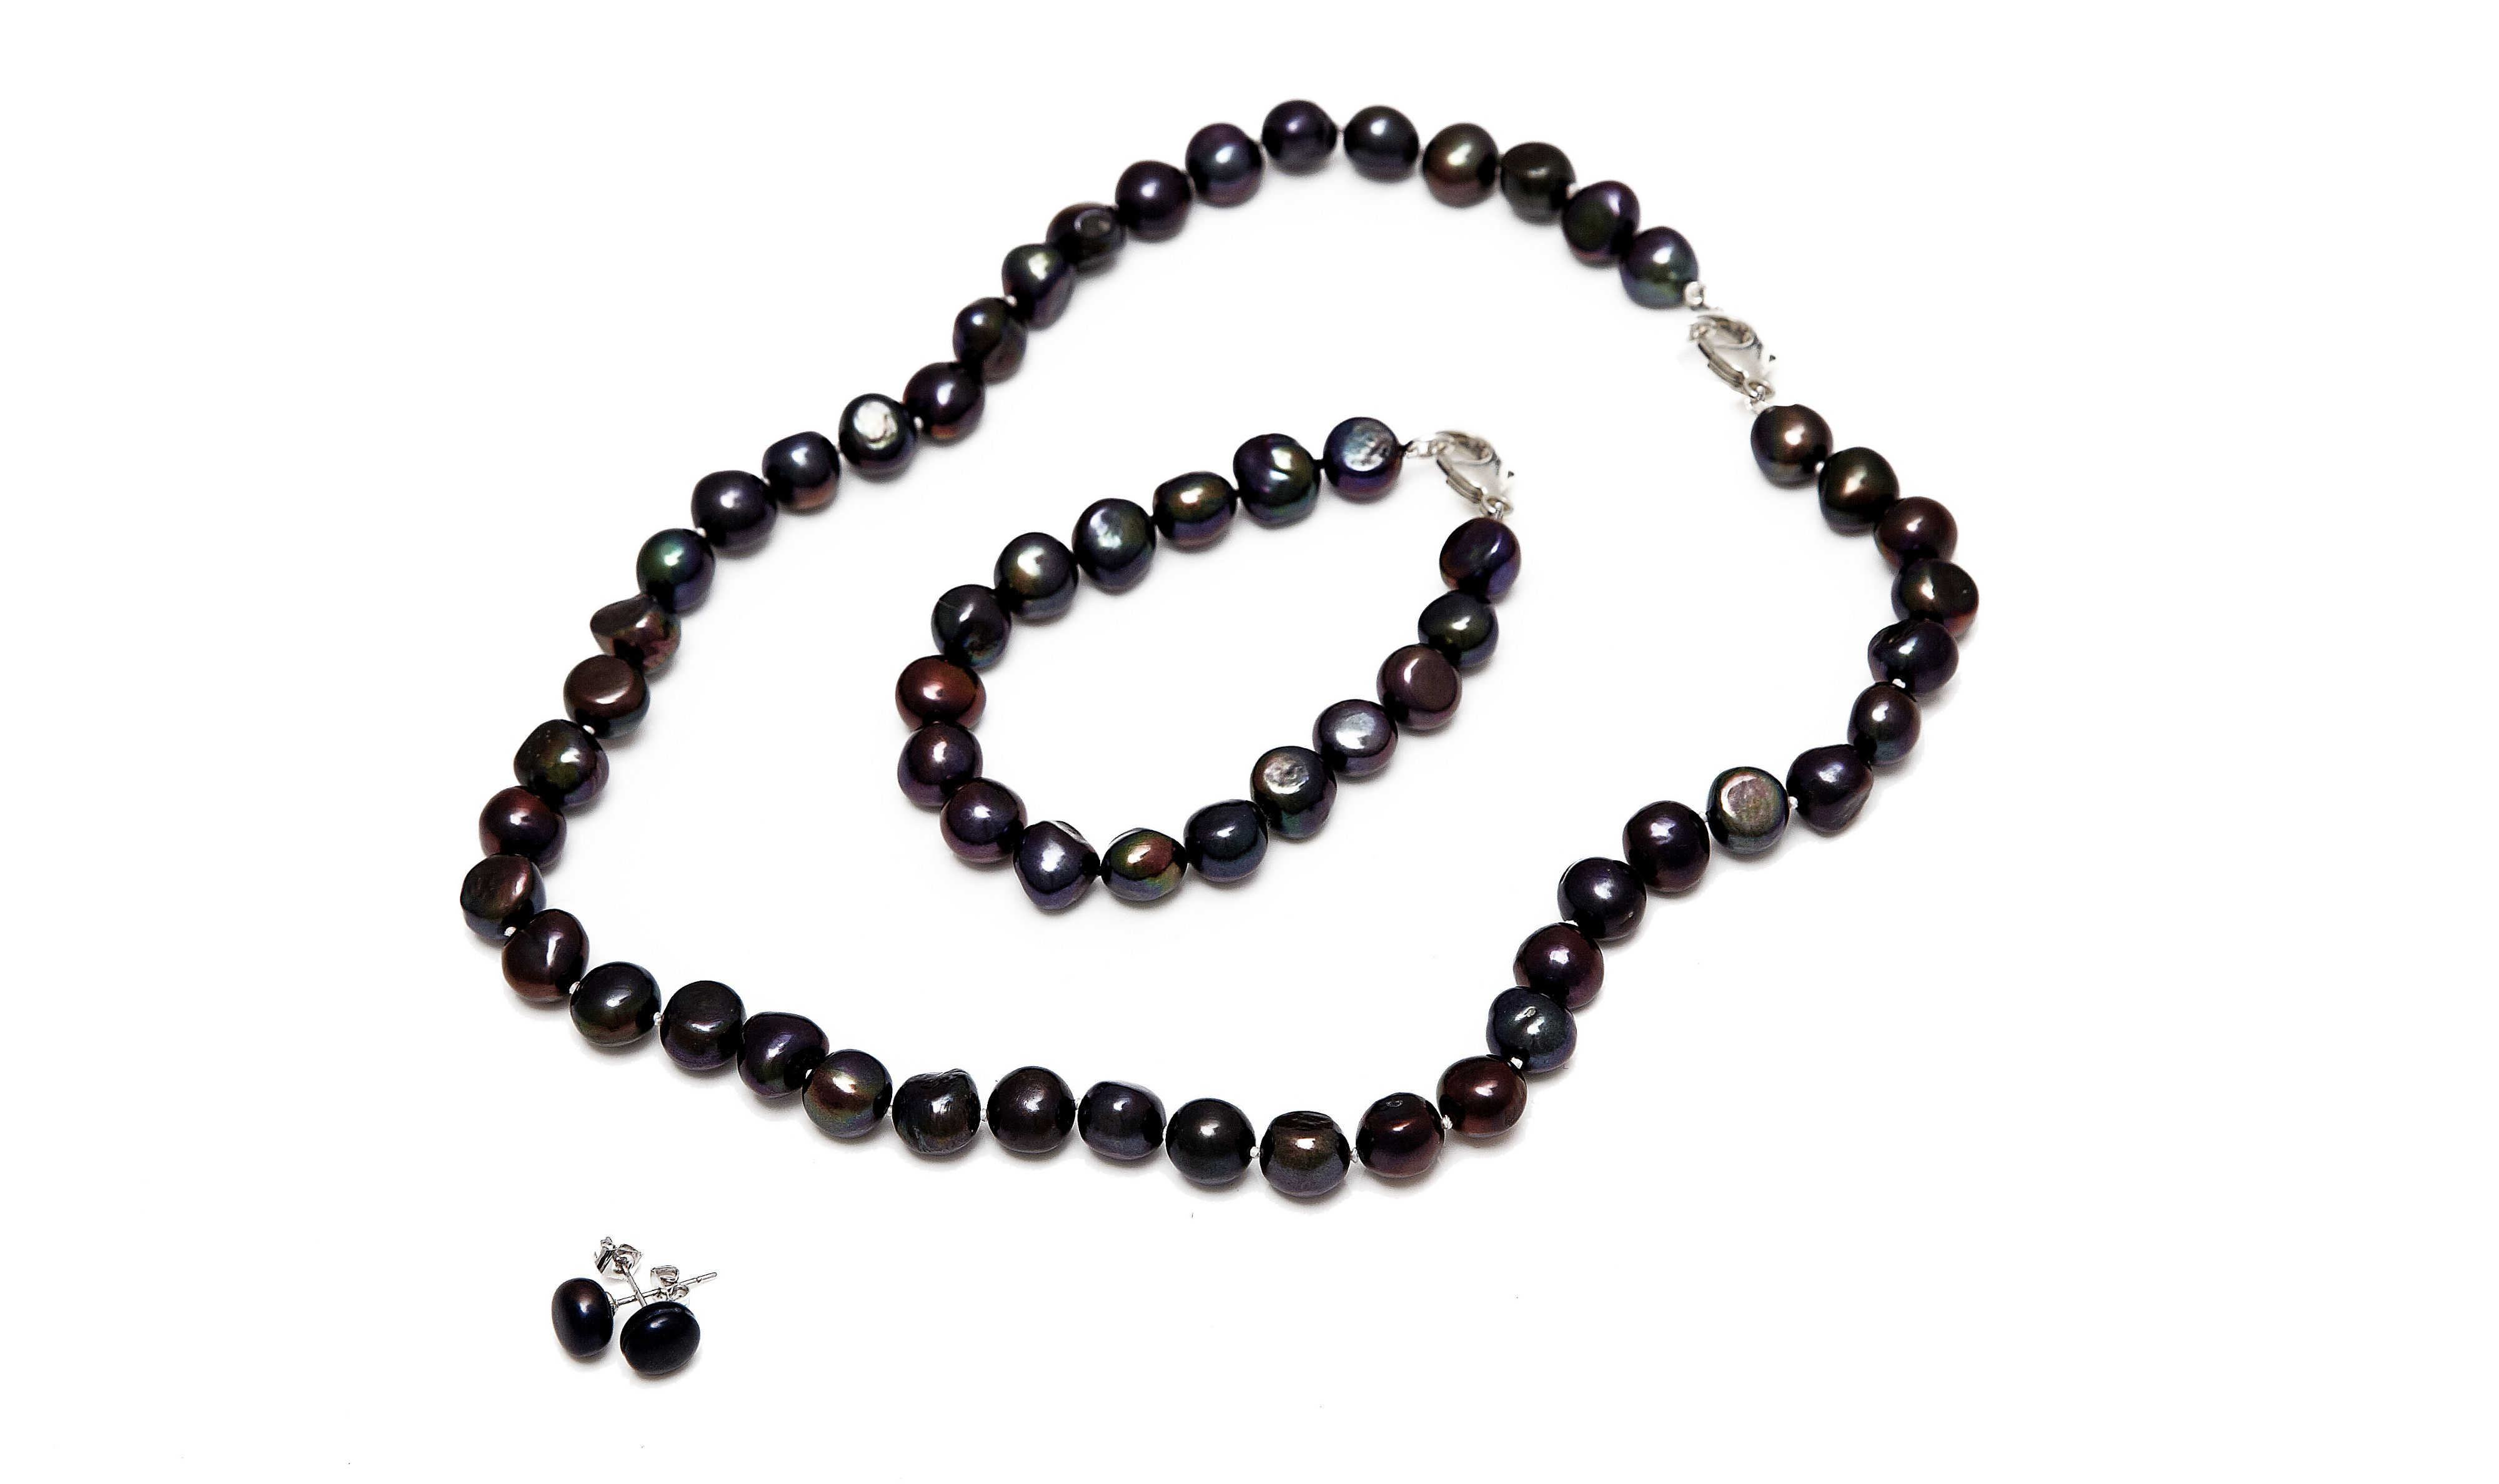 Kyoto Pearl Five row twisted baroque pearl necklace Black